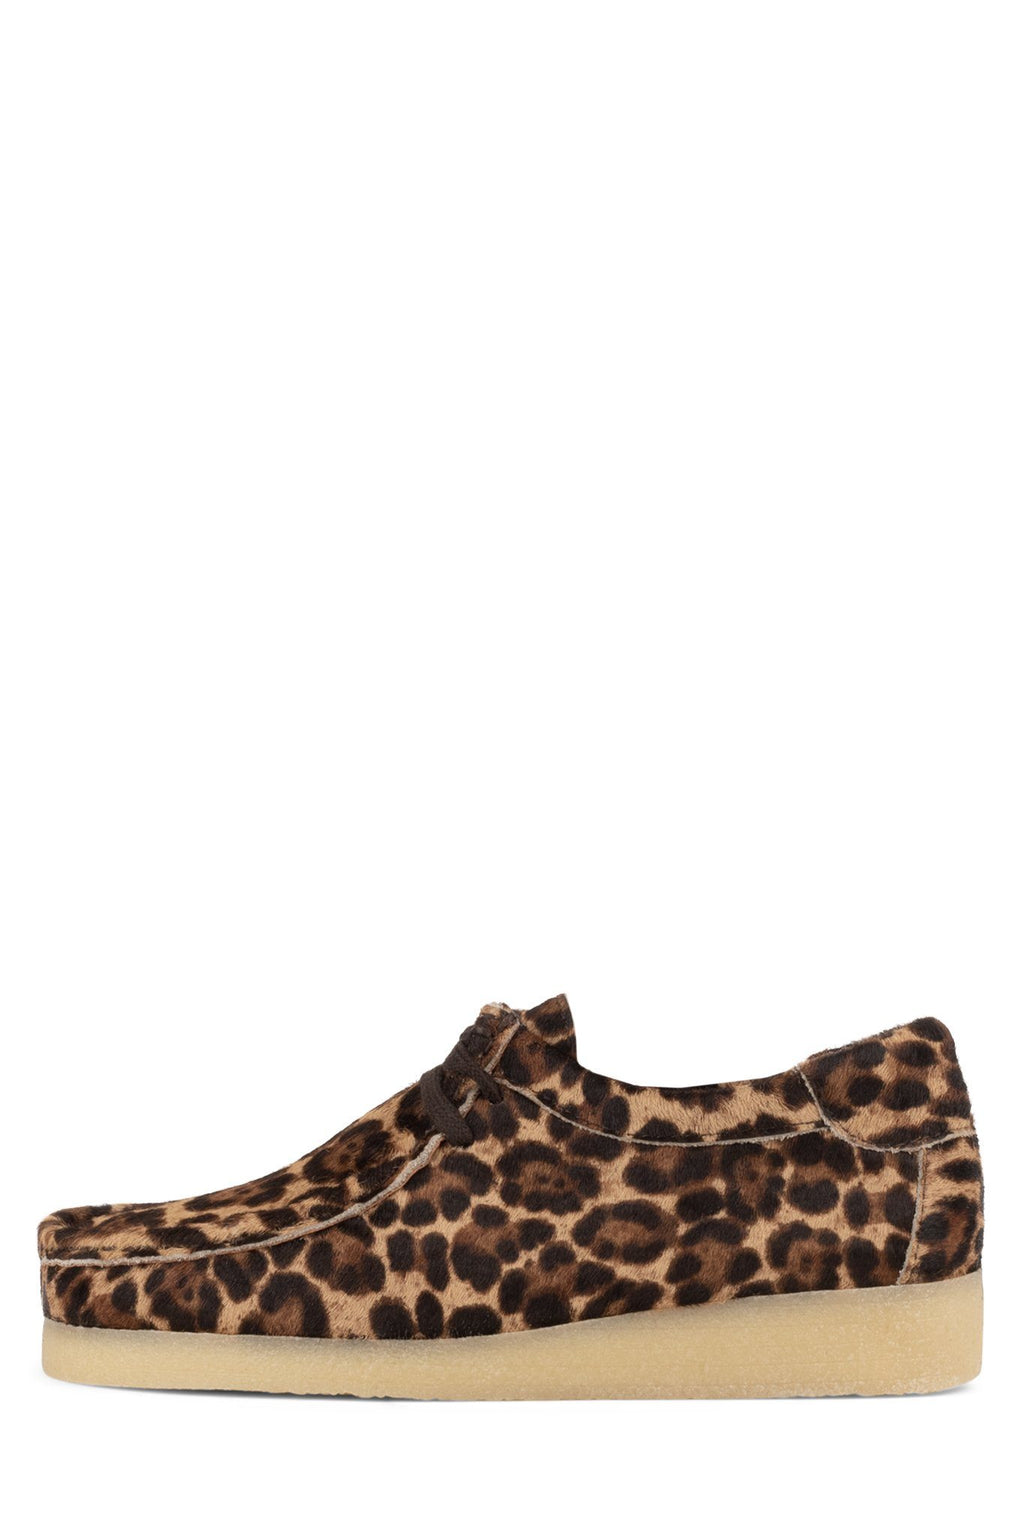 HUSKY-F Bootie Jeffrey Campbell Tan Cheetah 34